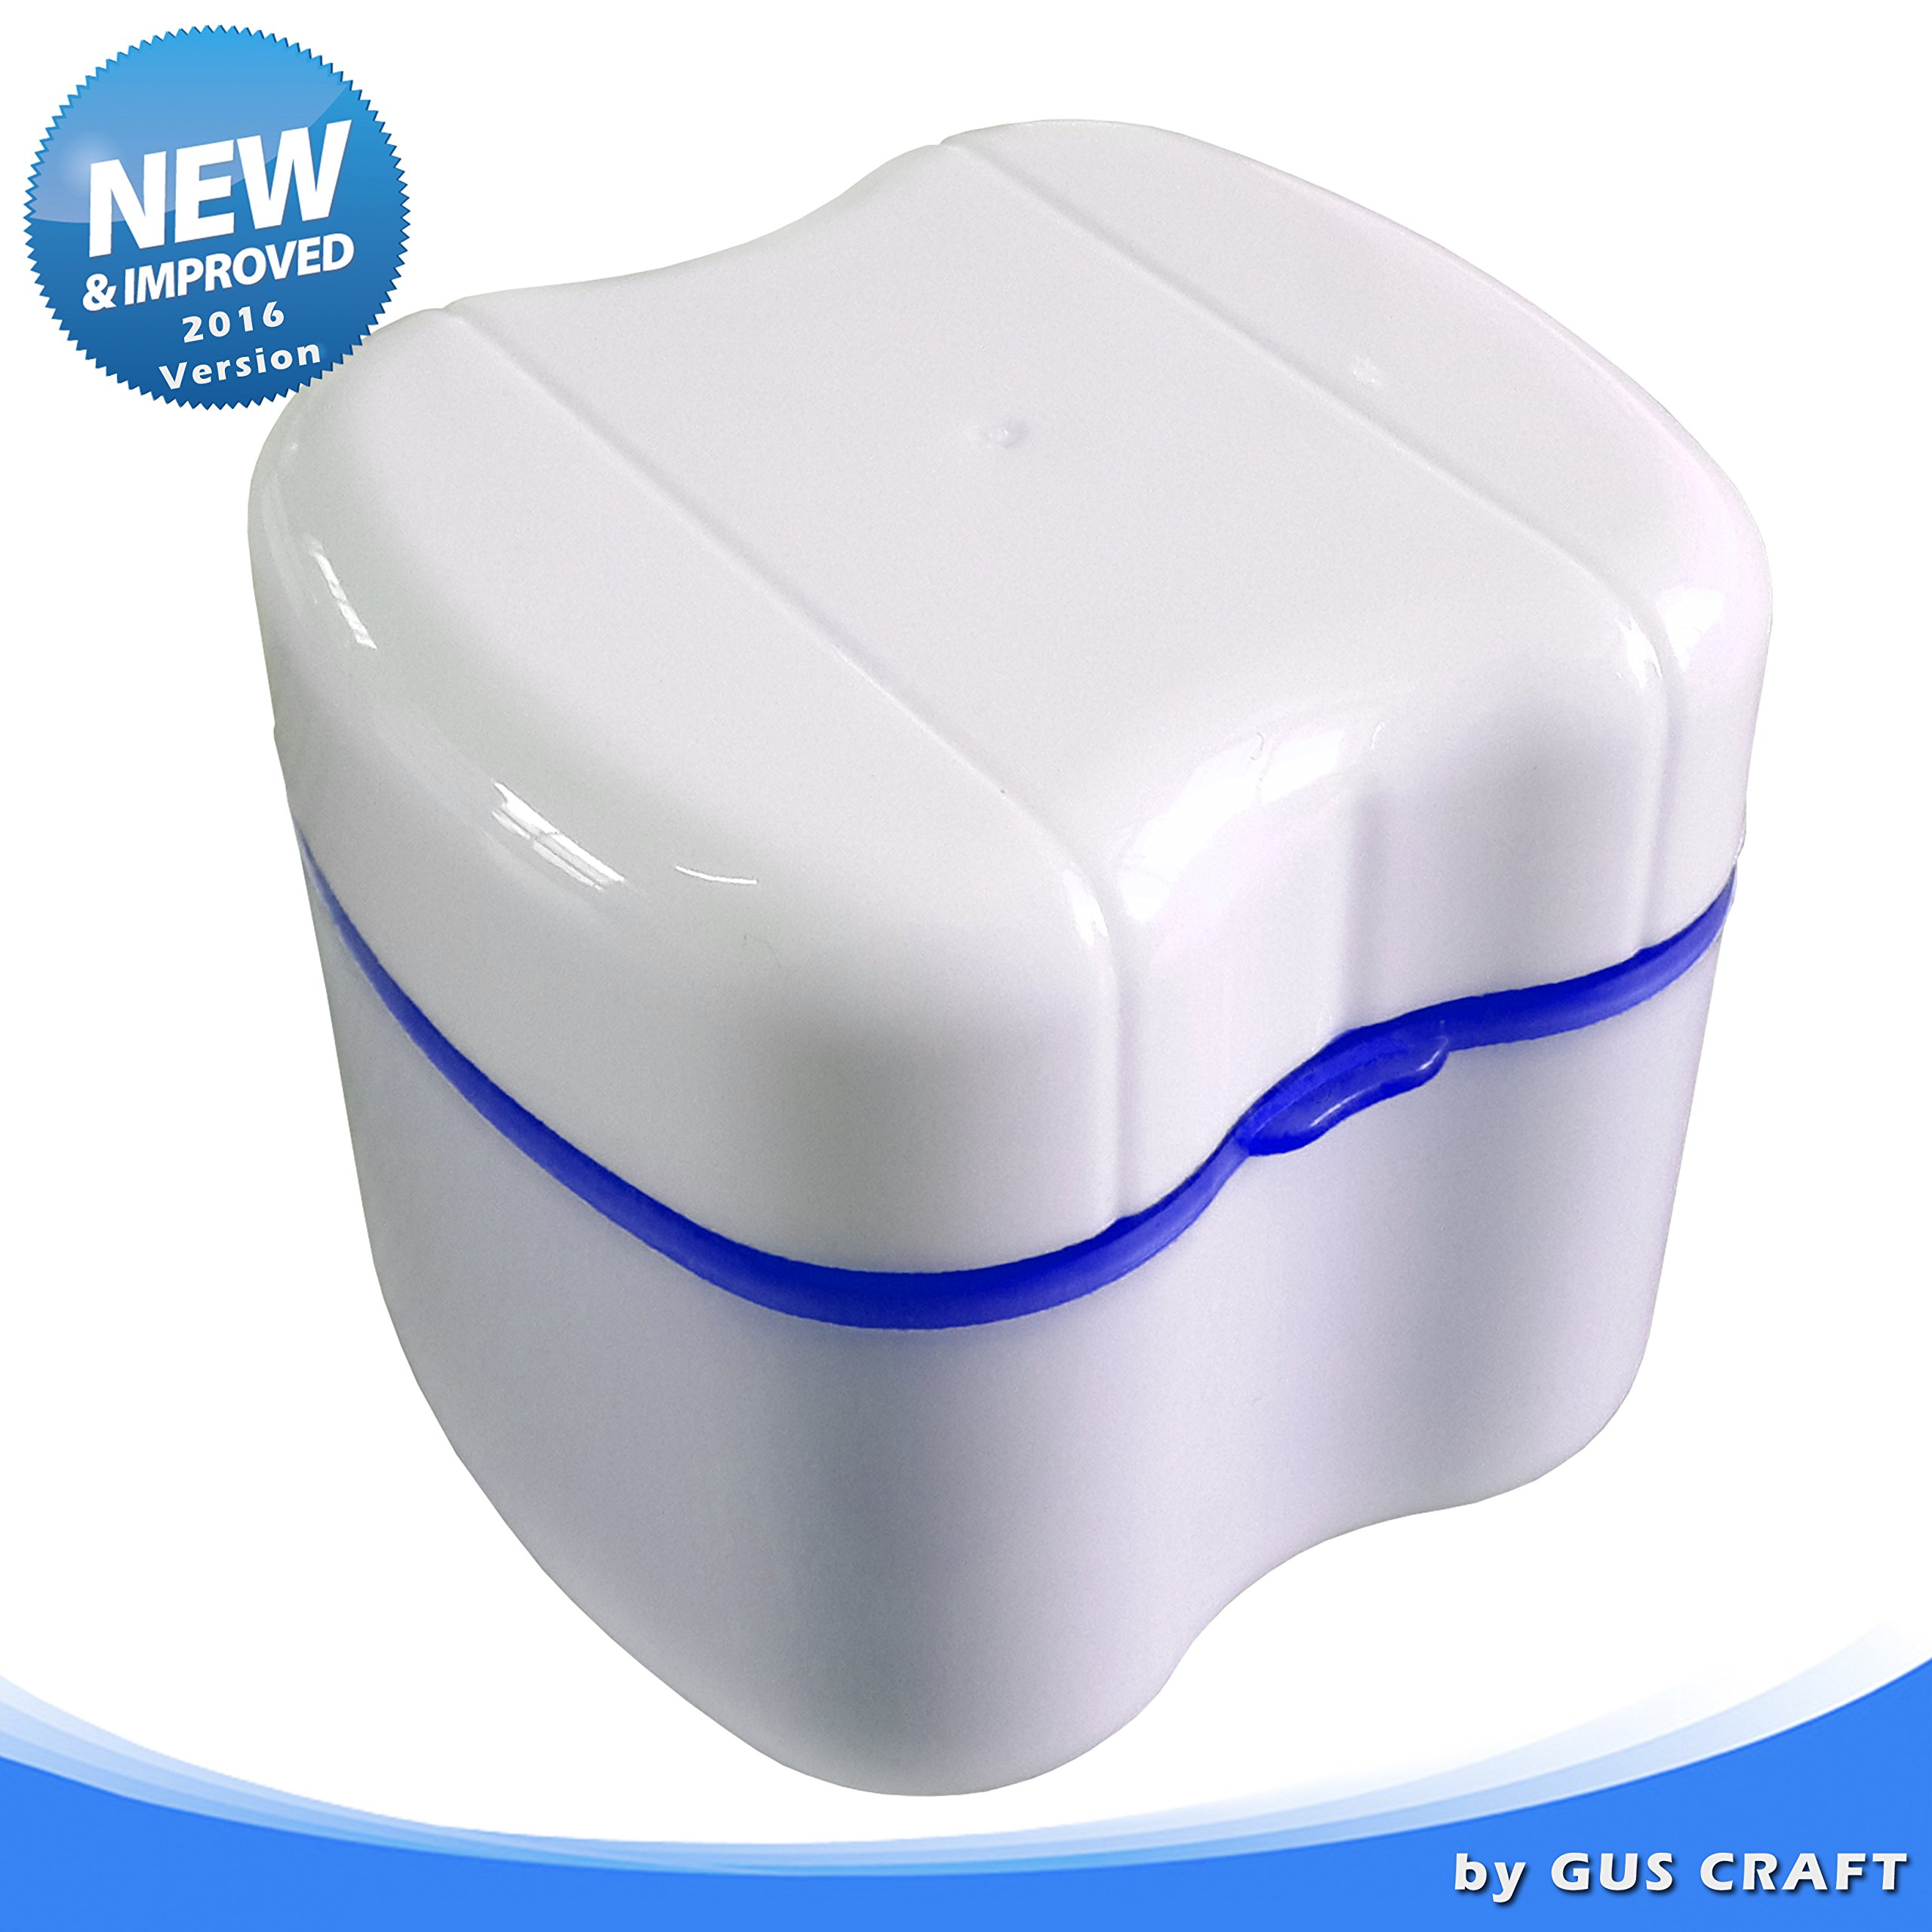 Strong Denture Box with Simple Retrieval Tab, Perfect To Safe Guard Dentures and Valuables, Easy To Open, Store and Retrieve (True Blue)